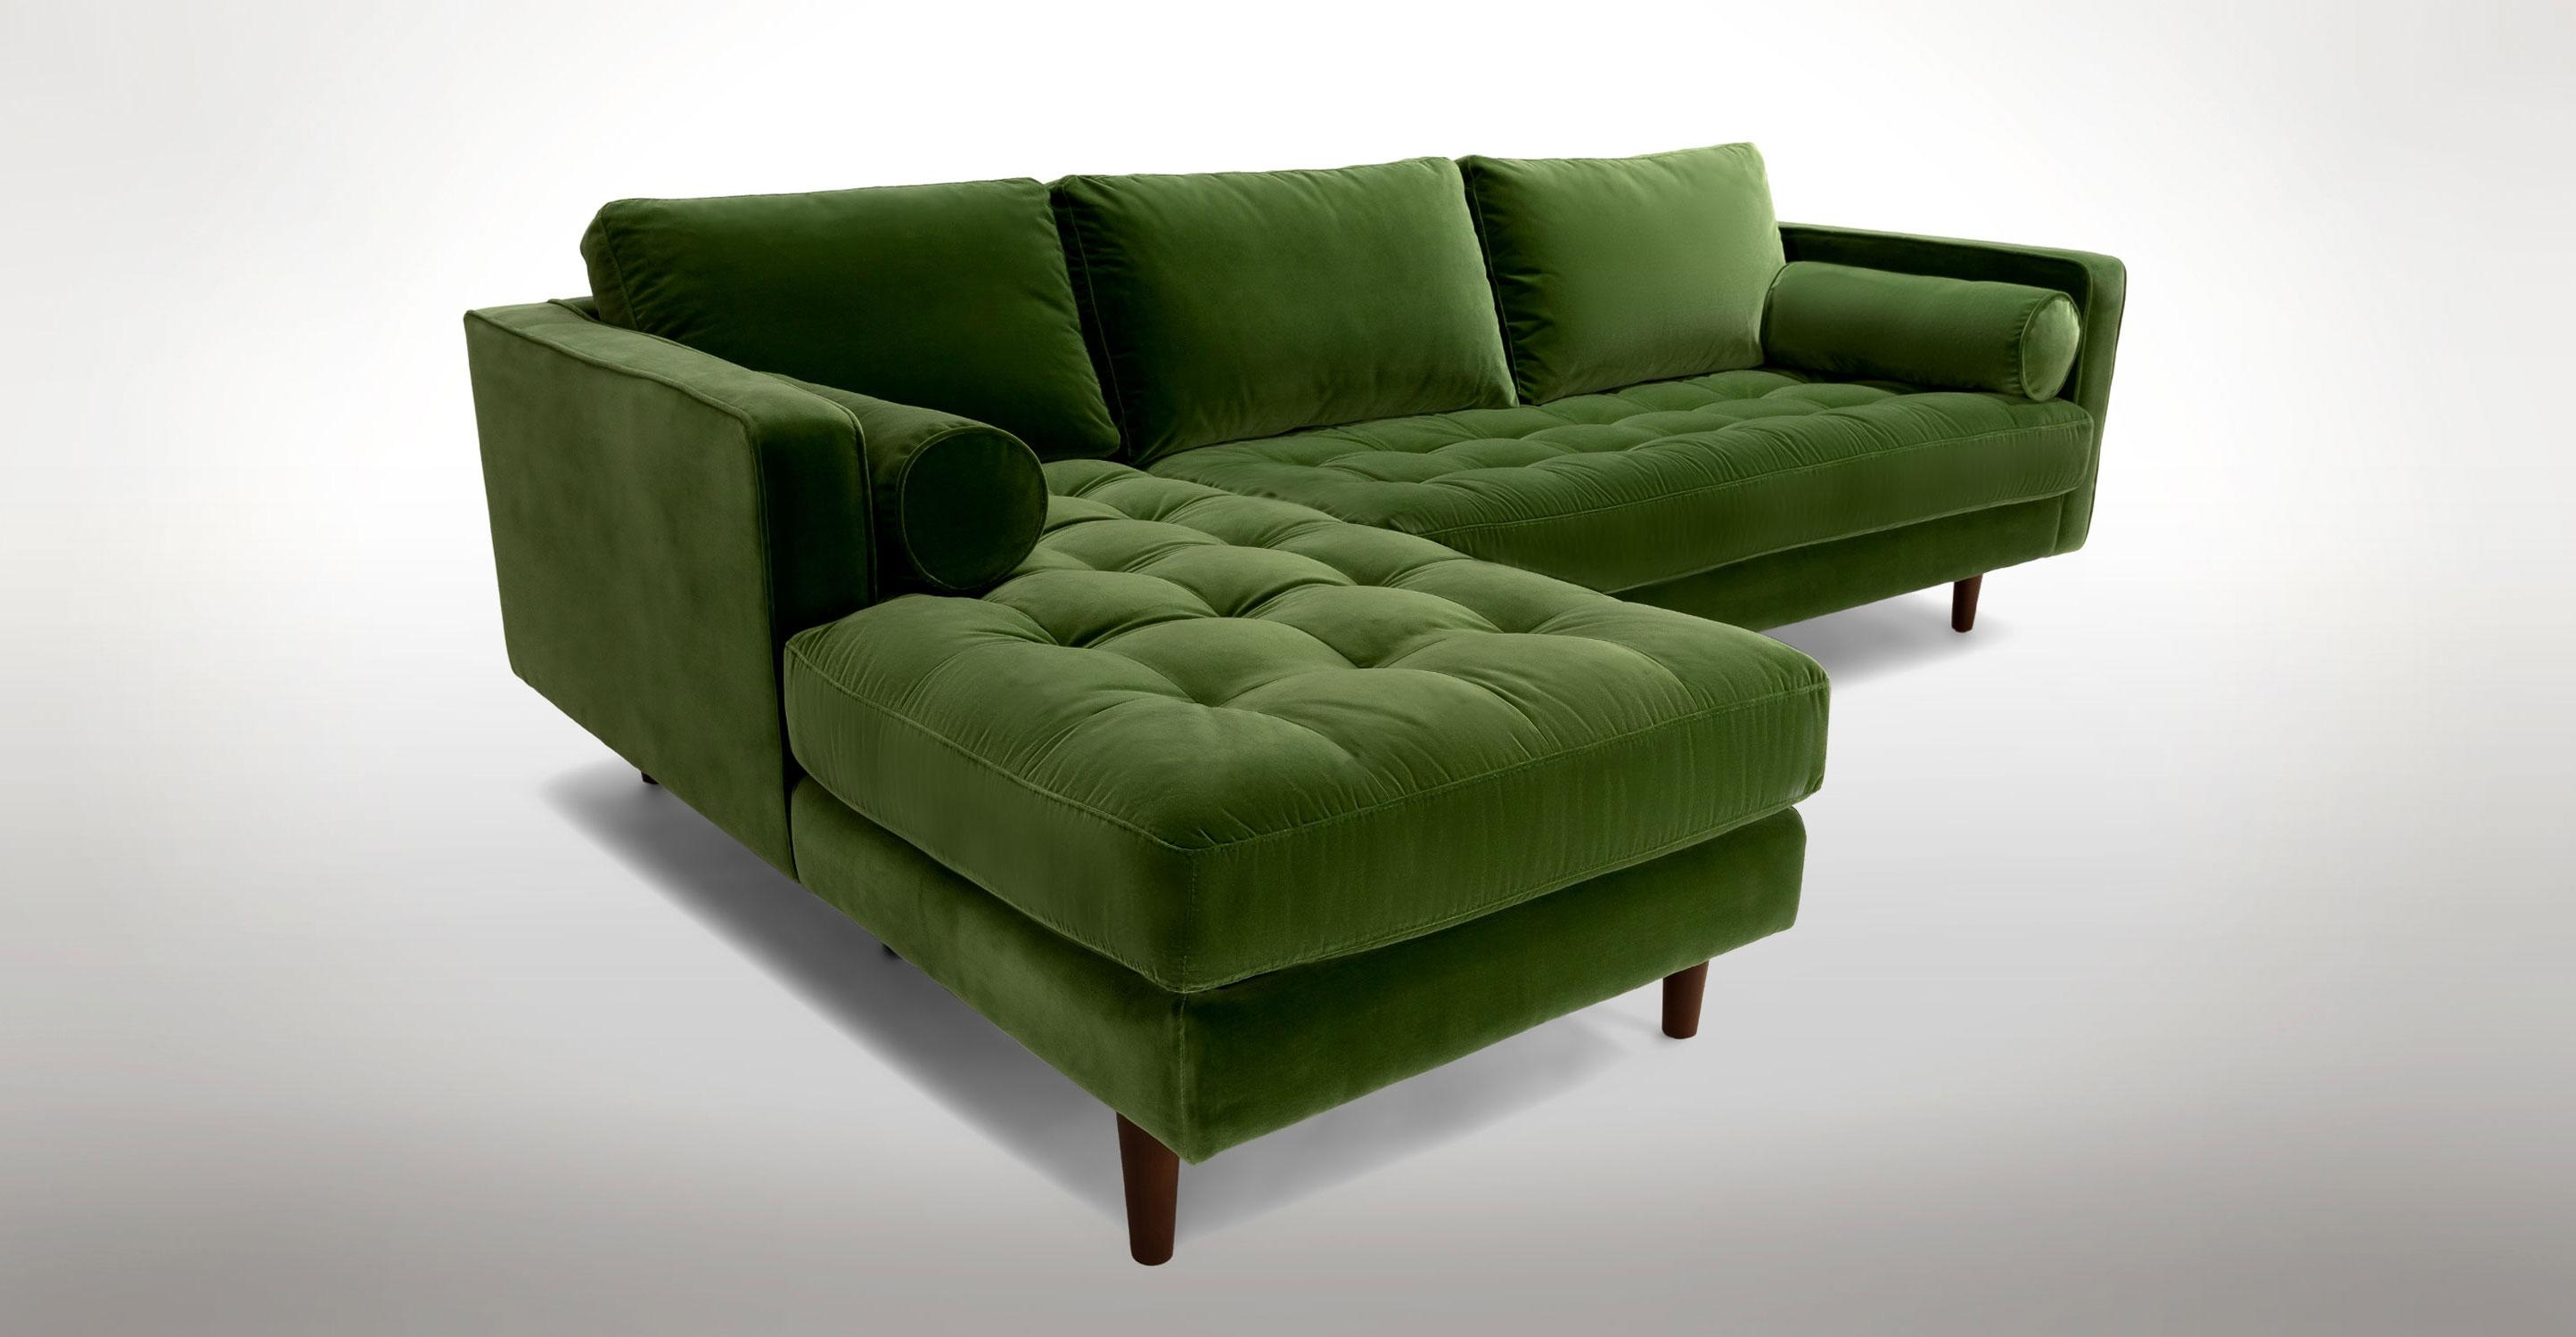 2018 Latest Green Sectional Sofa